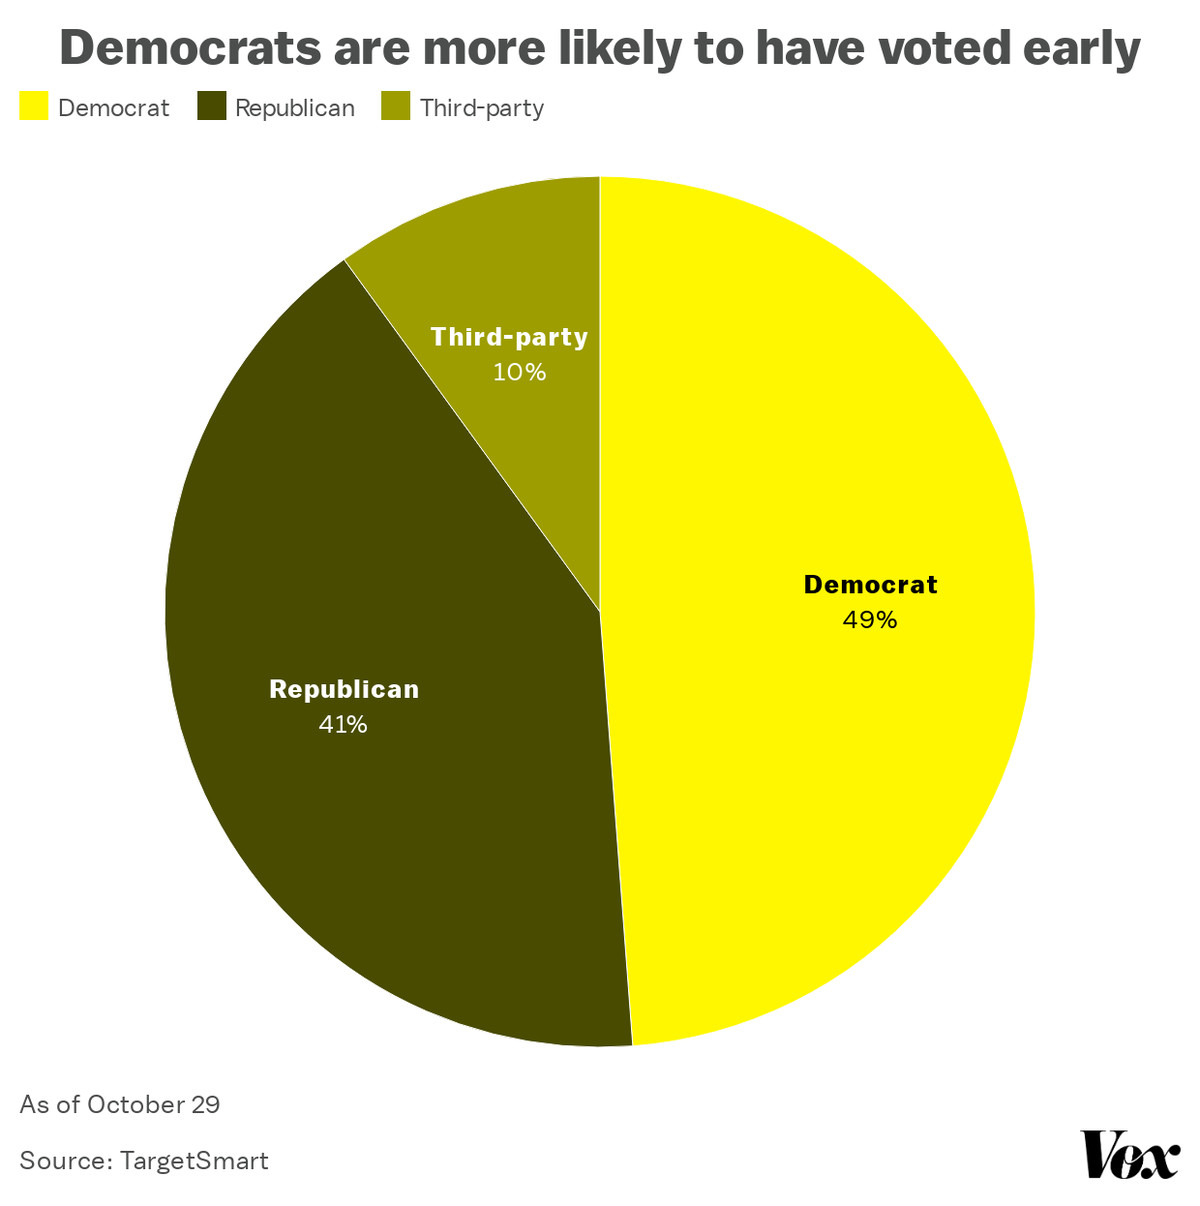 Democrats are more likely to have voted early